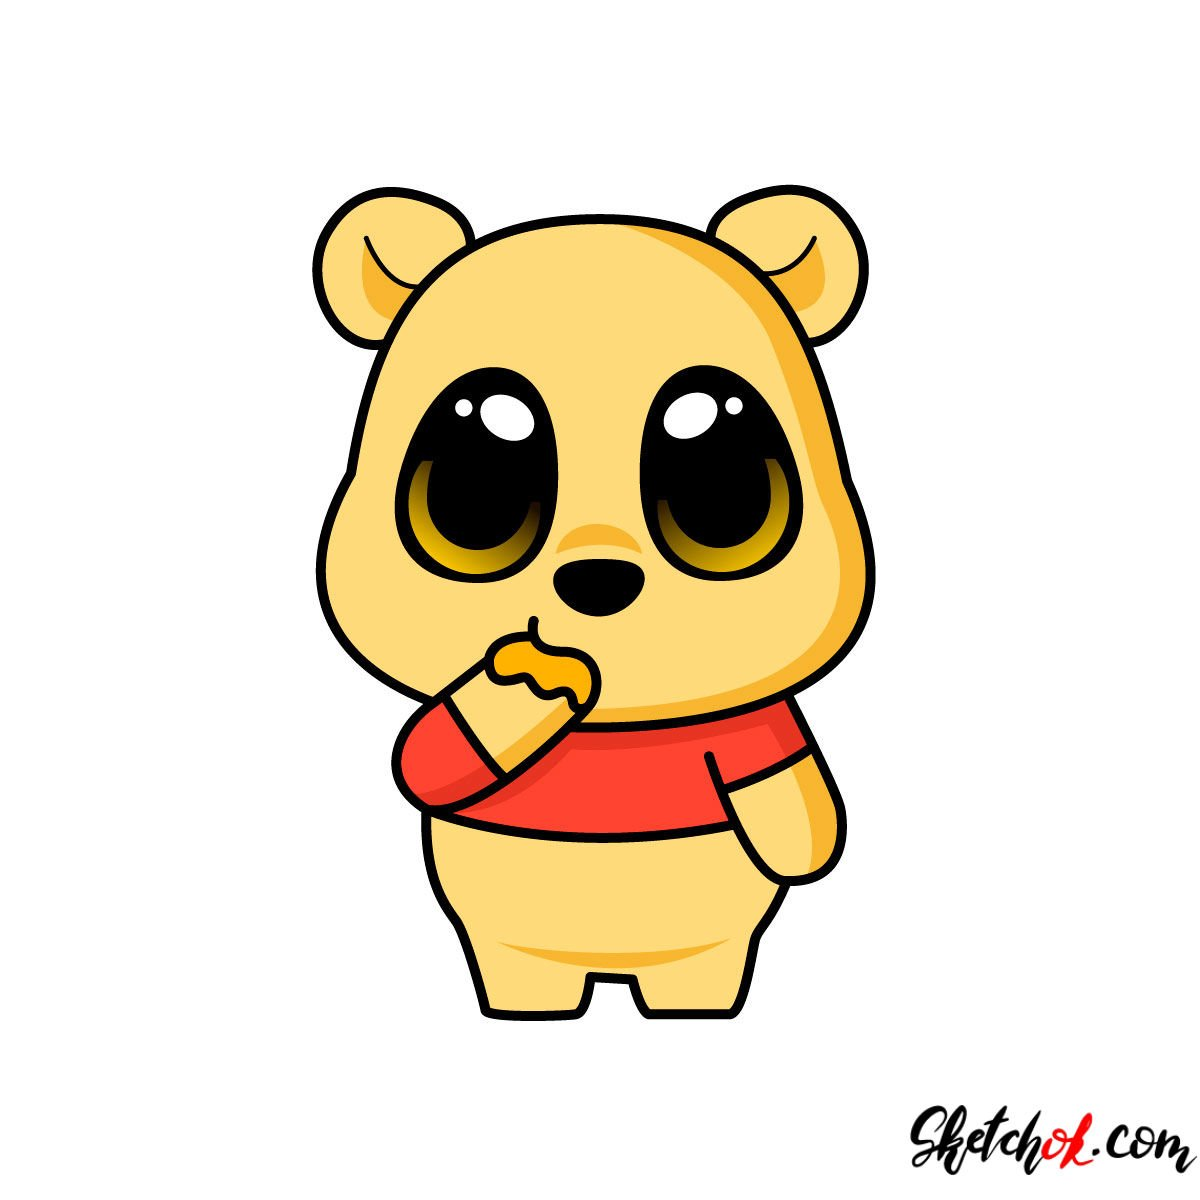 How to draw Pooh Bear chibi - coloring